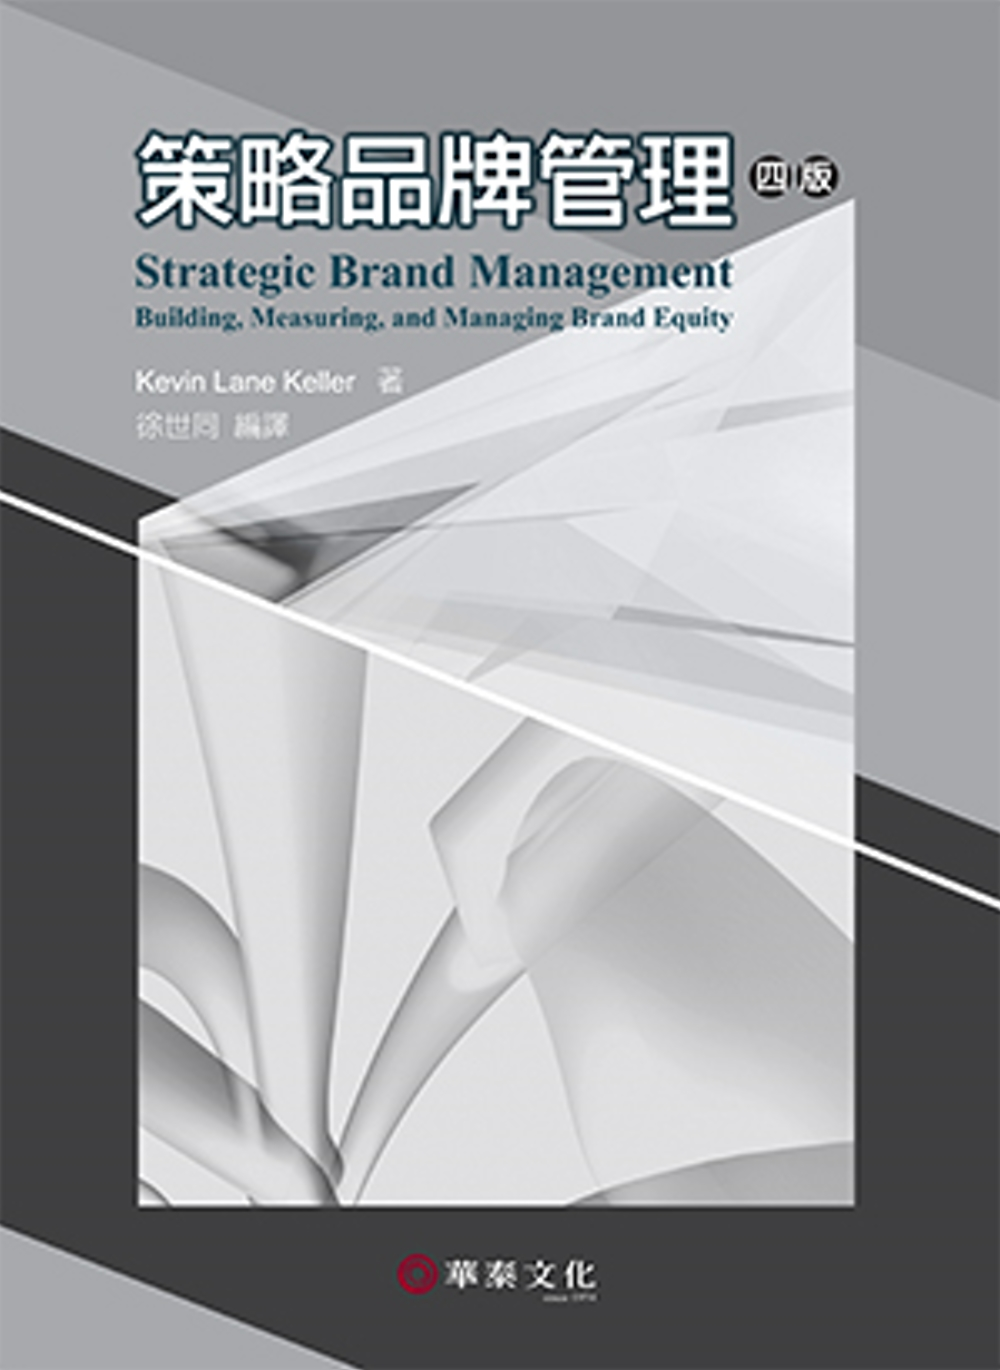 策略品牌管理(Keller/Strategic Brand Management 4e)(4版)